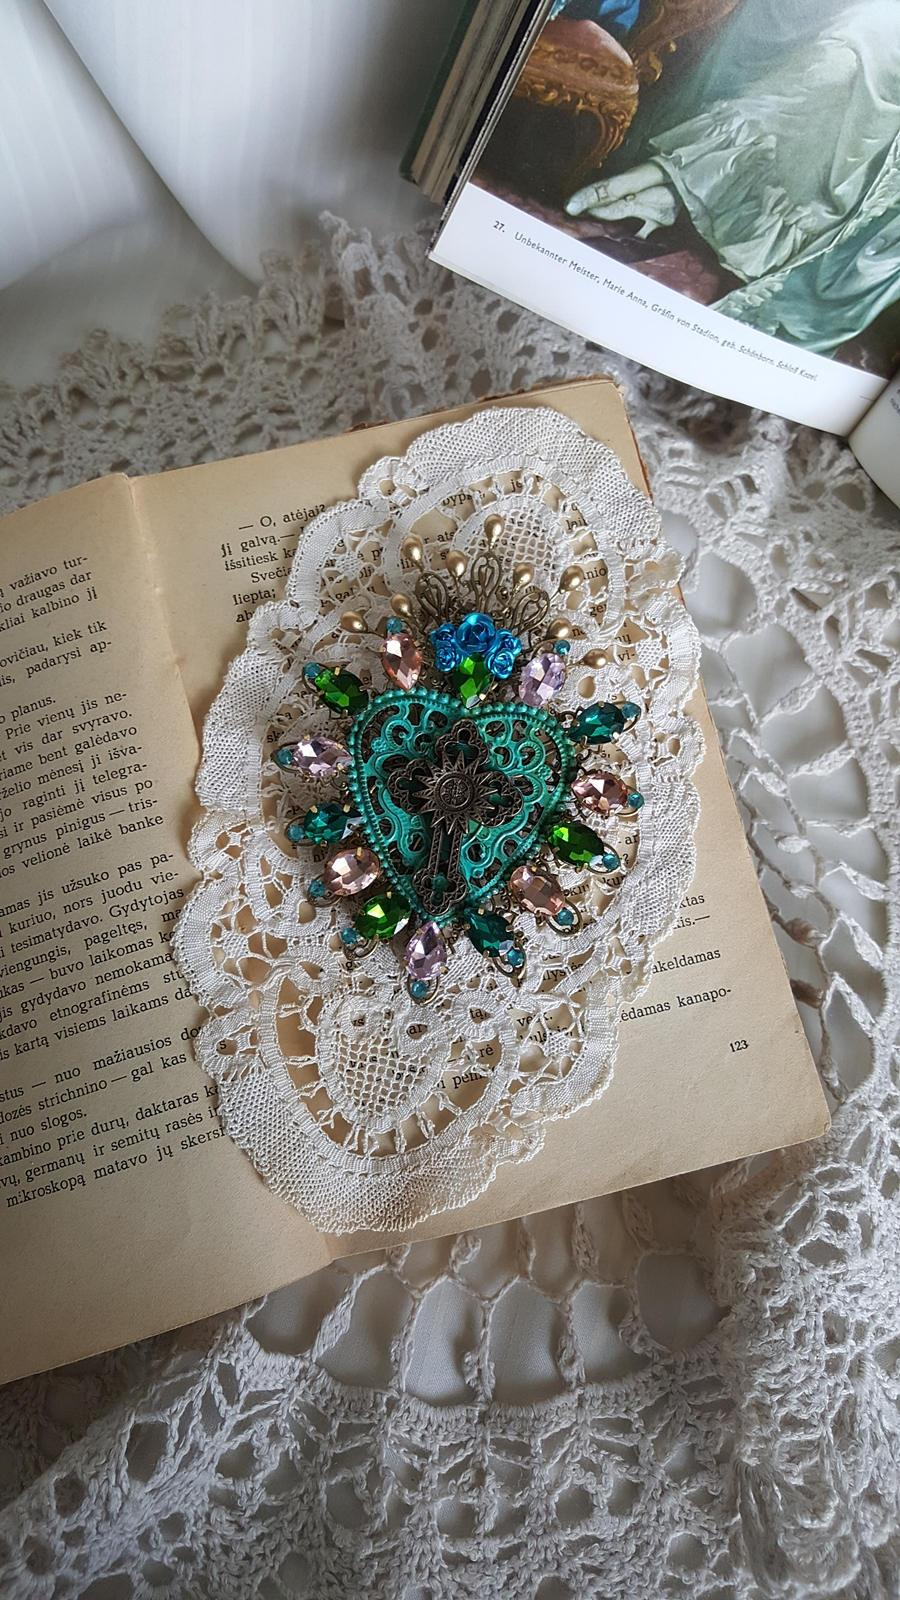 "Wedding - Sacre coeur brooch - sacred heart - ex voto jewelry - patina - mermaid - sea foam - baroque - ""The Heart of a Mermaid"""